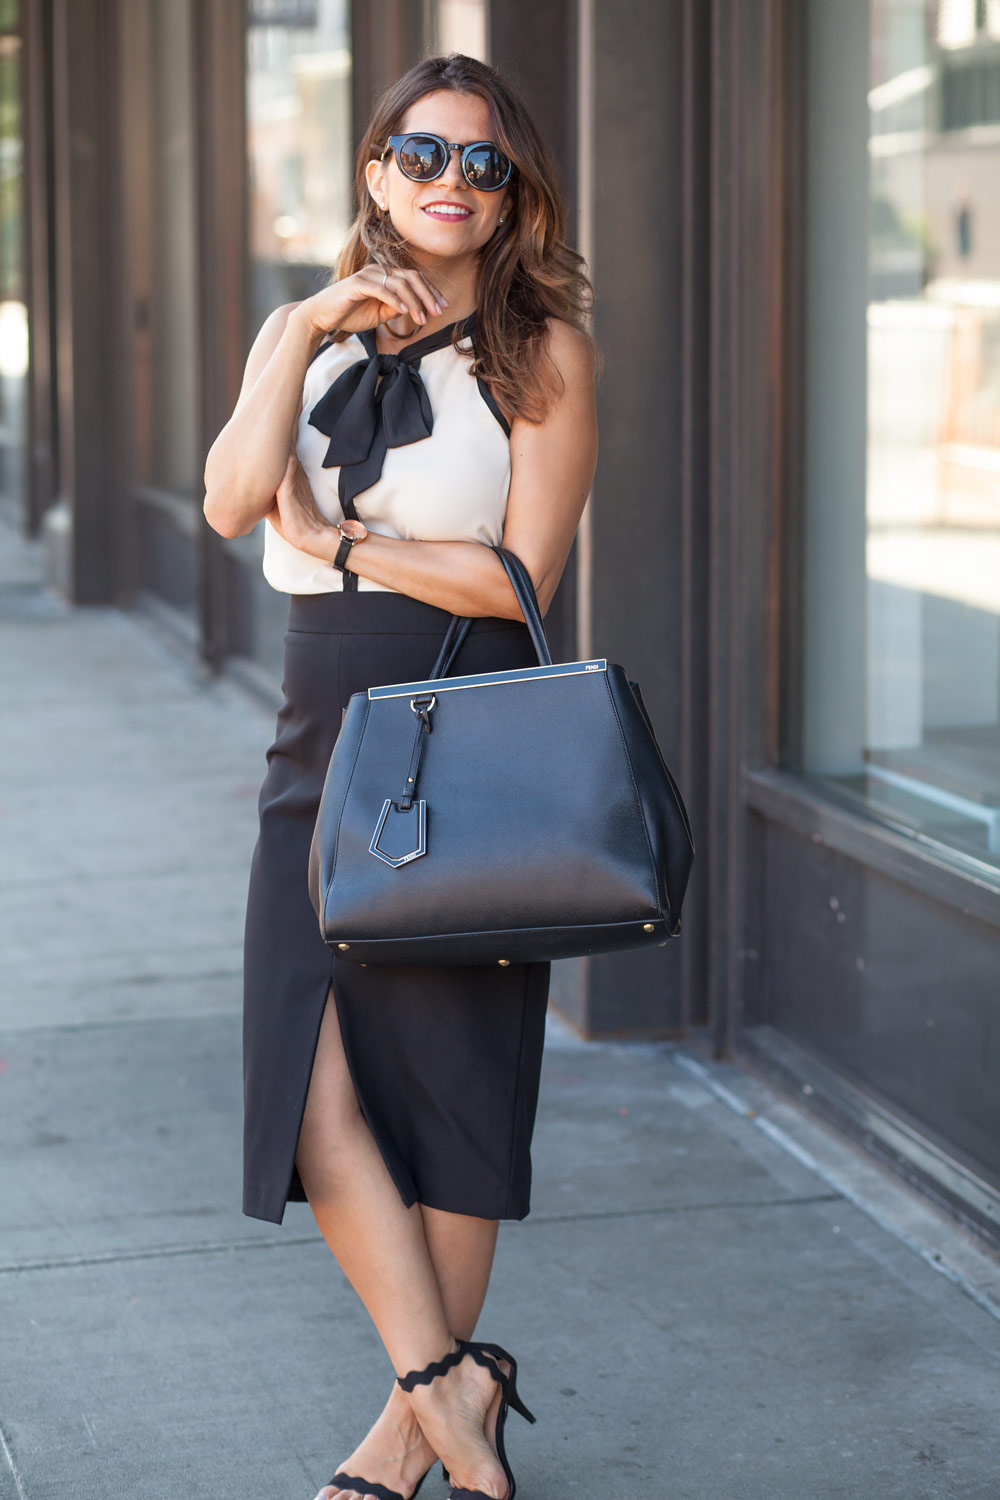 Black-pencil-skirt-neck-tie-bow-blouse-ModCloth-workwear-outfits-scalloped-black-heels-black-fendi-tote-what-to-wear-to-work-corporate-catwalk-nyc-new-york-fashion-blogger-copy5